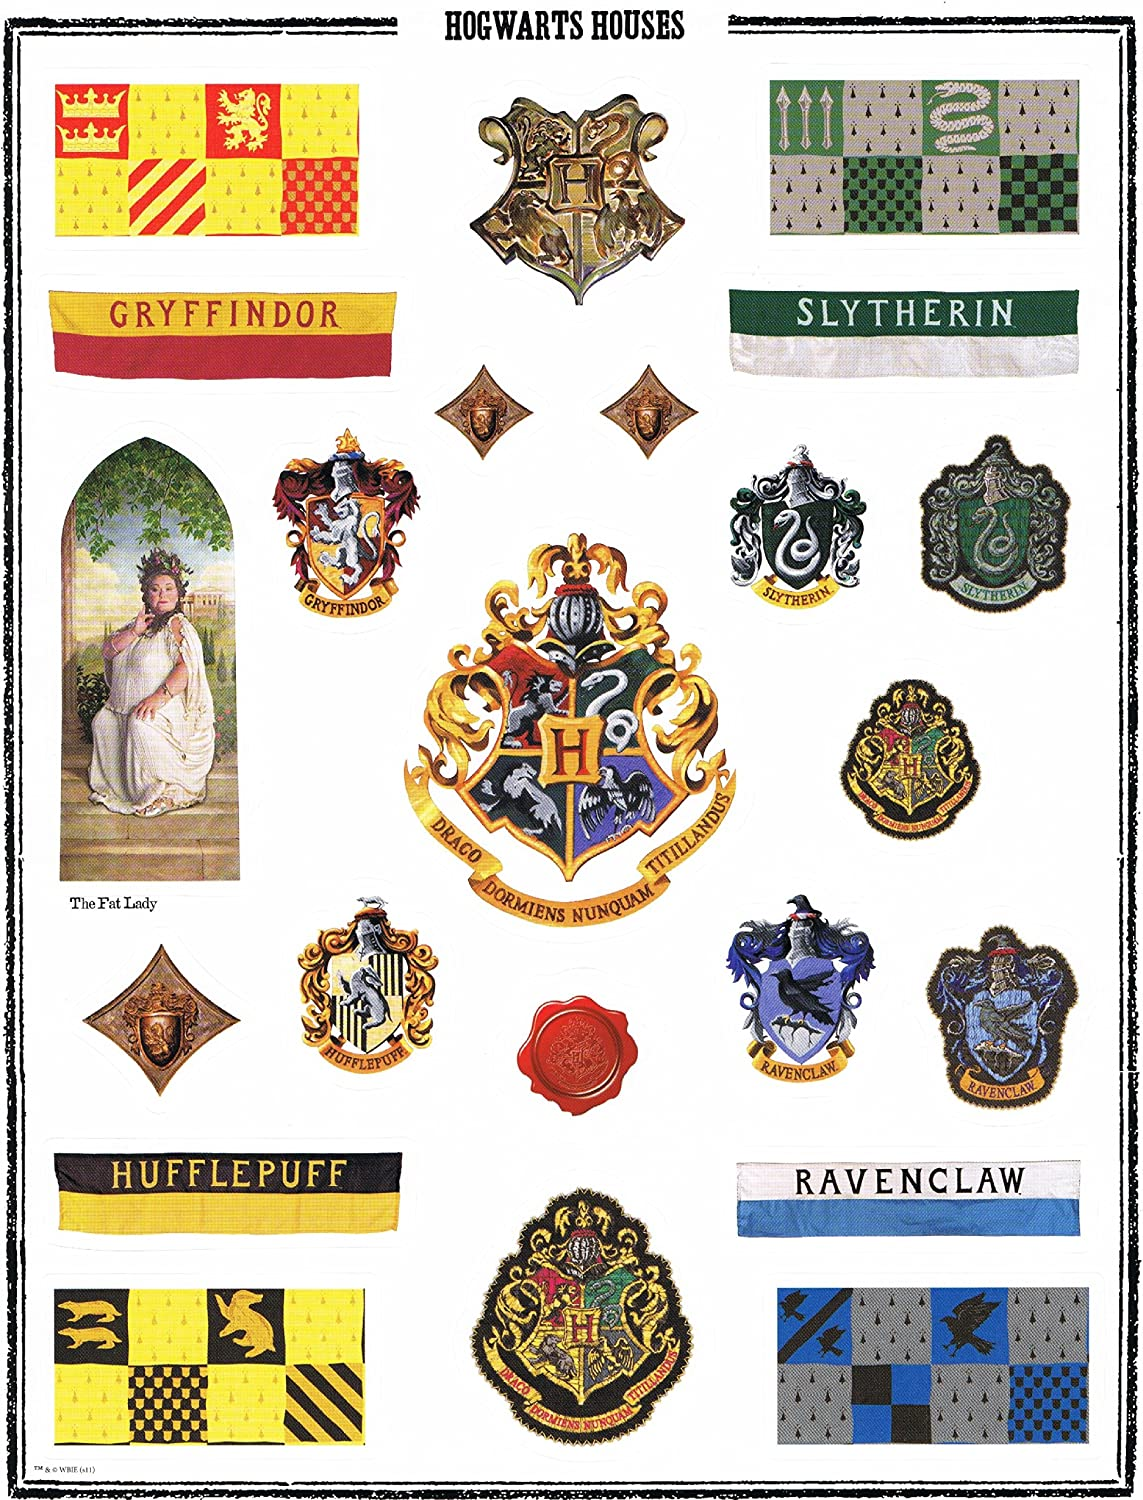 It's just a picture of Printable Hogwarts House Crests with regard to diy